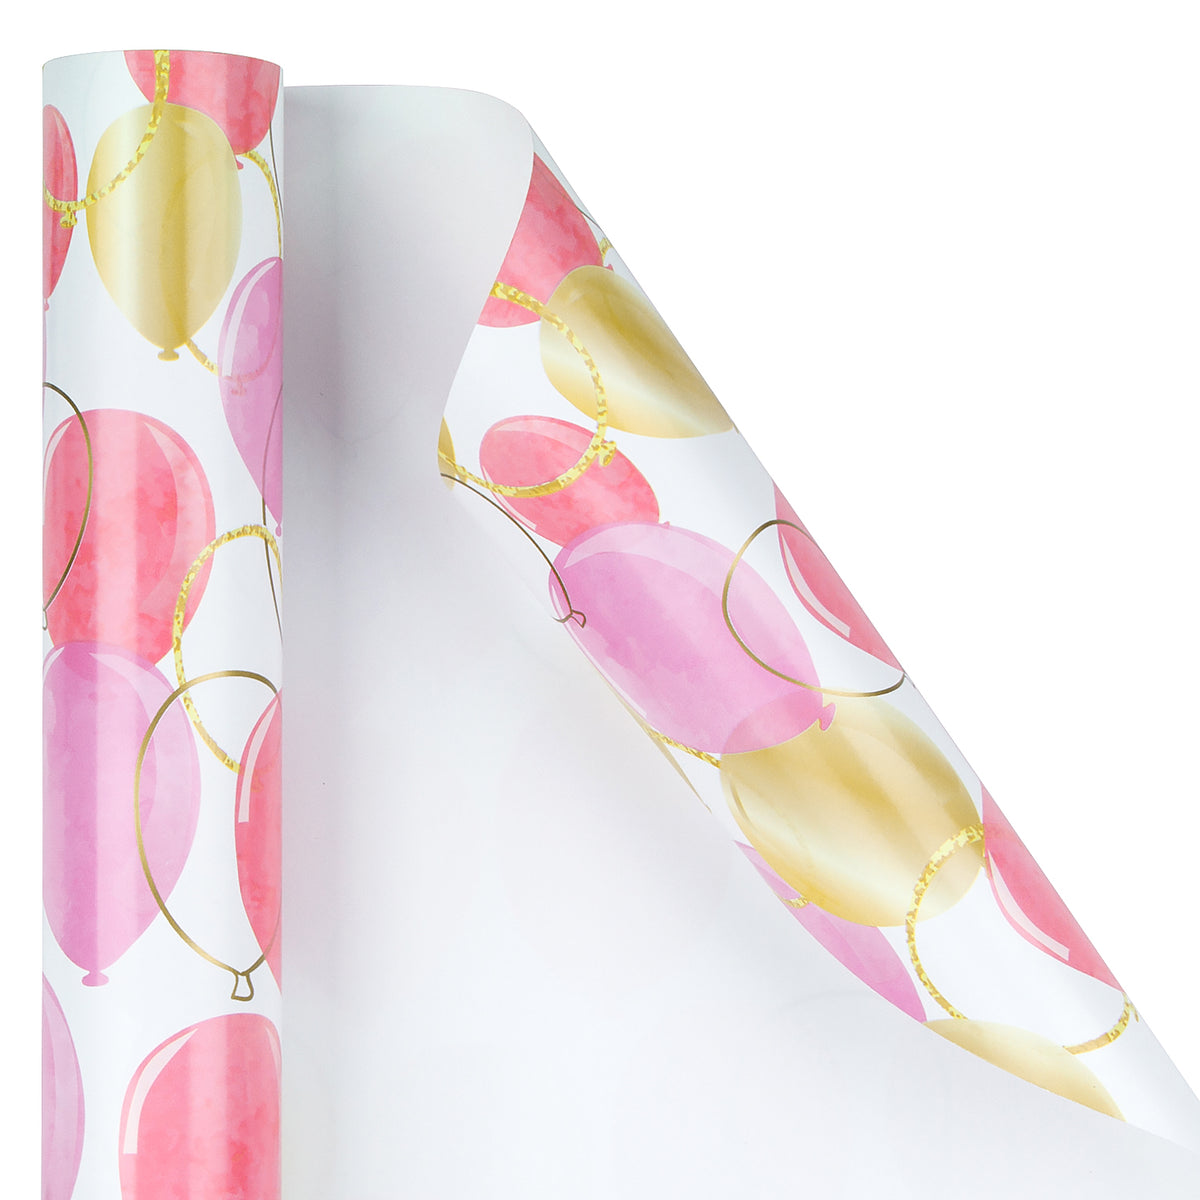 Wrapaholic-Pink-Purple-Gold-Print-Celebrating-Balloon-Design Gift-Wrapping-Paper-Roll-3